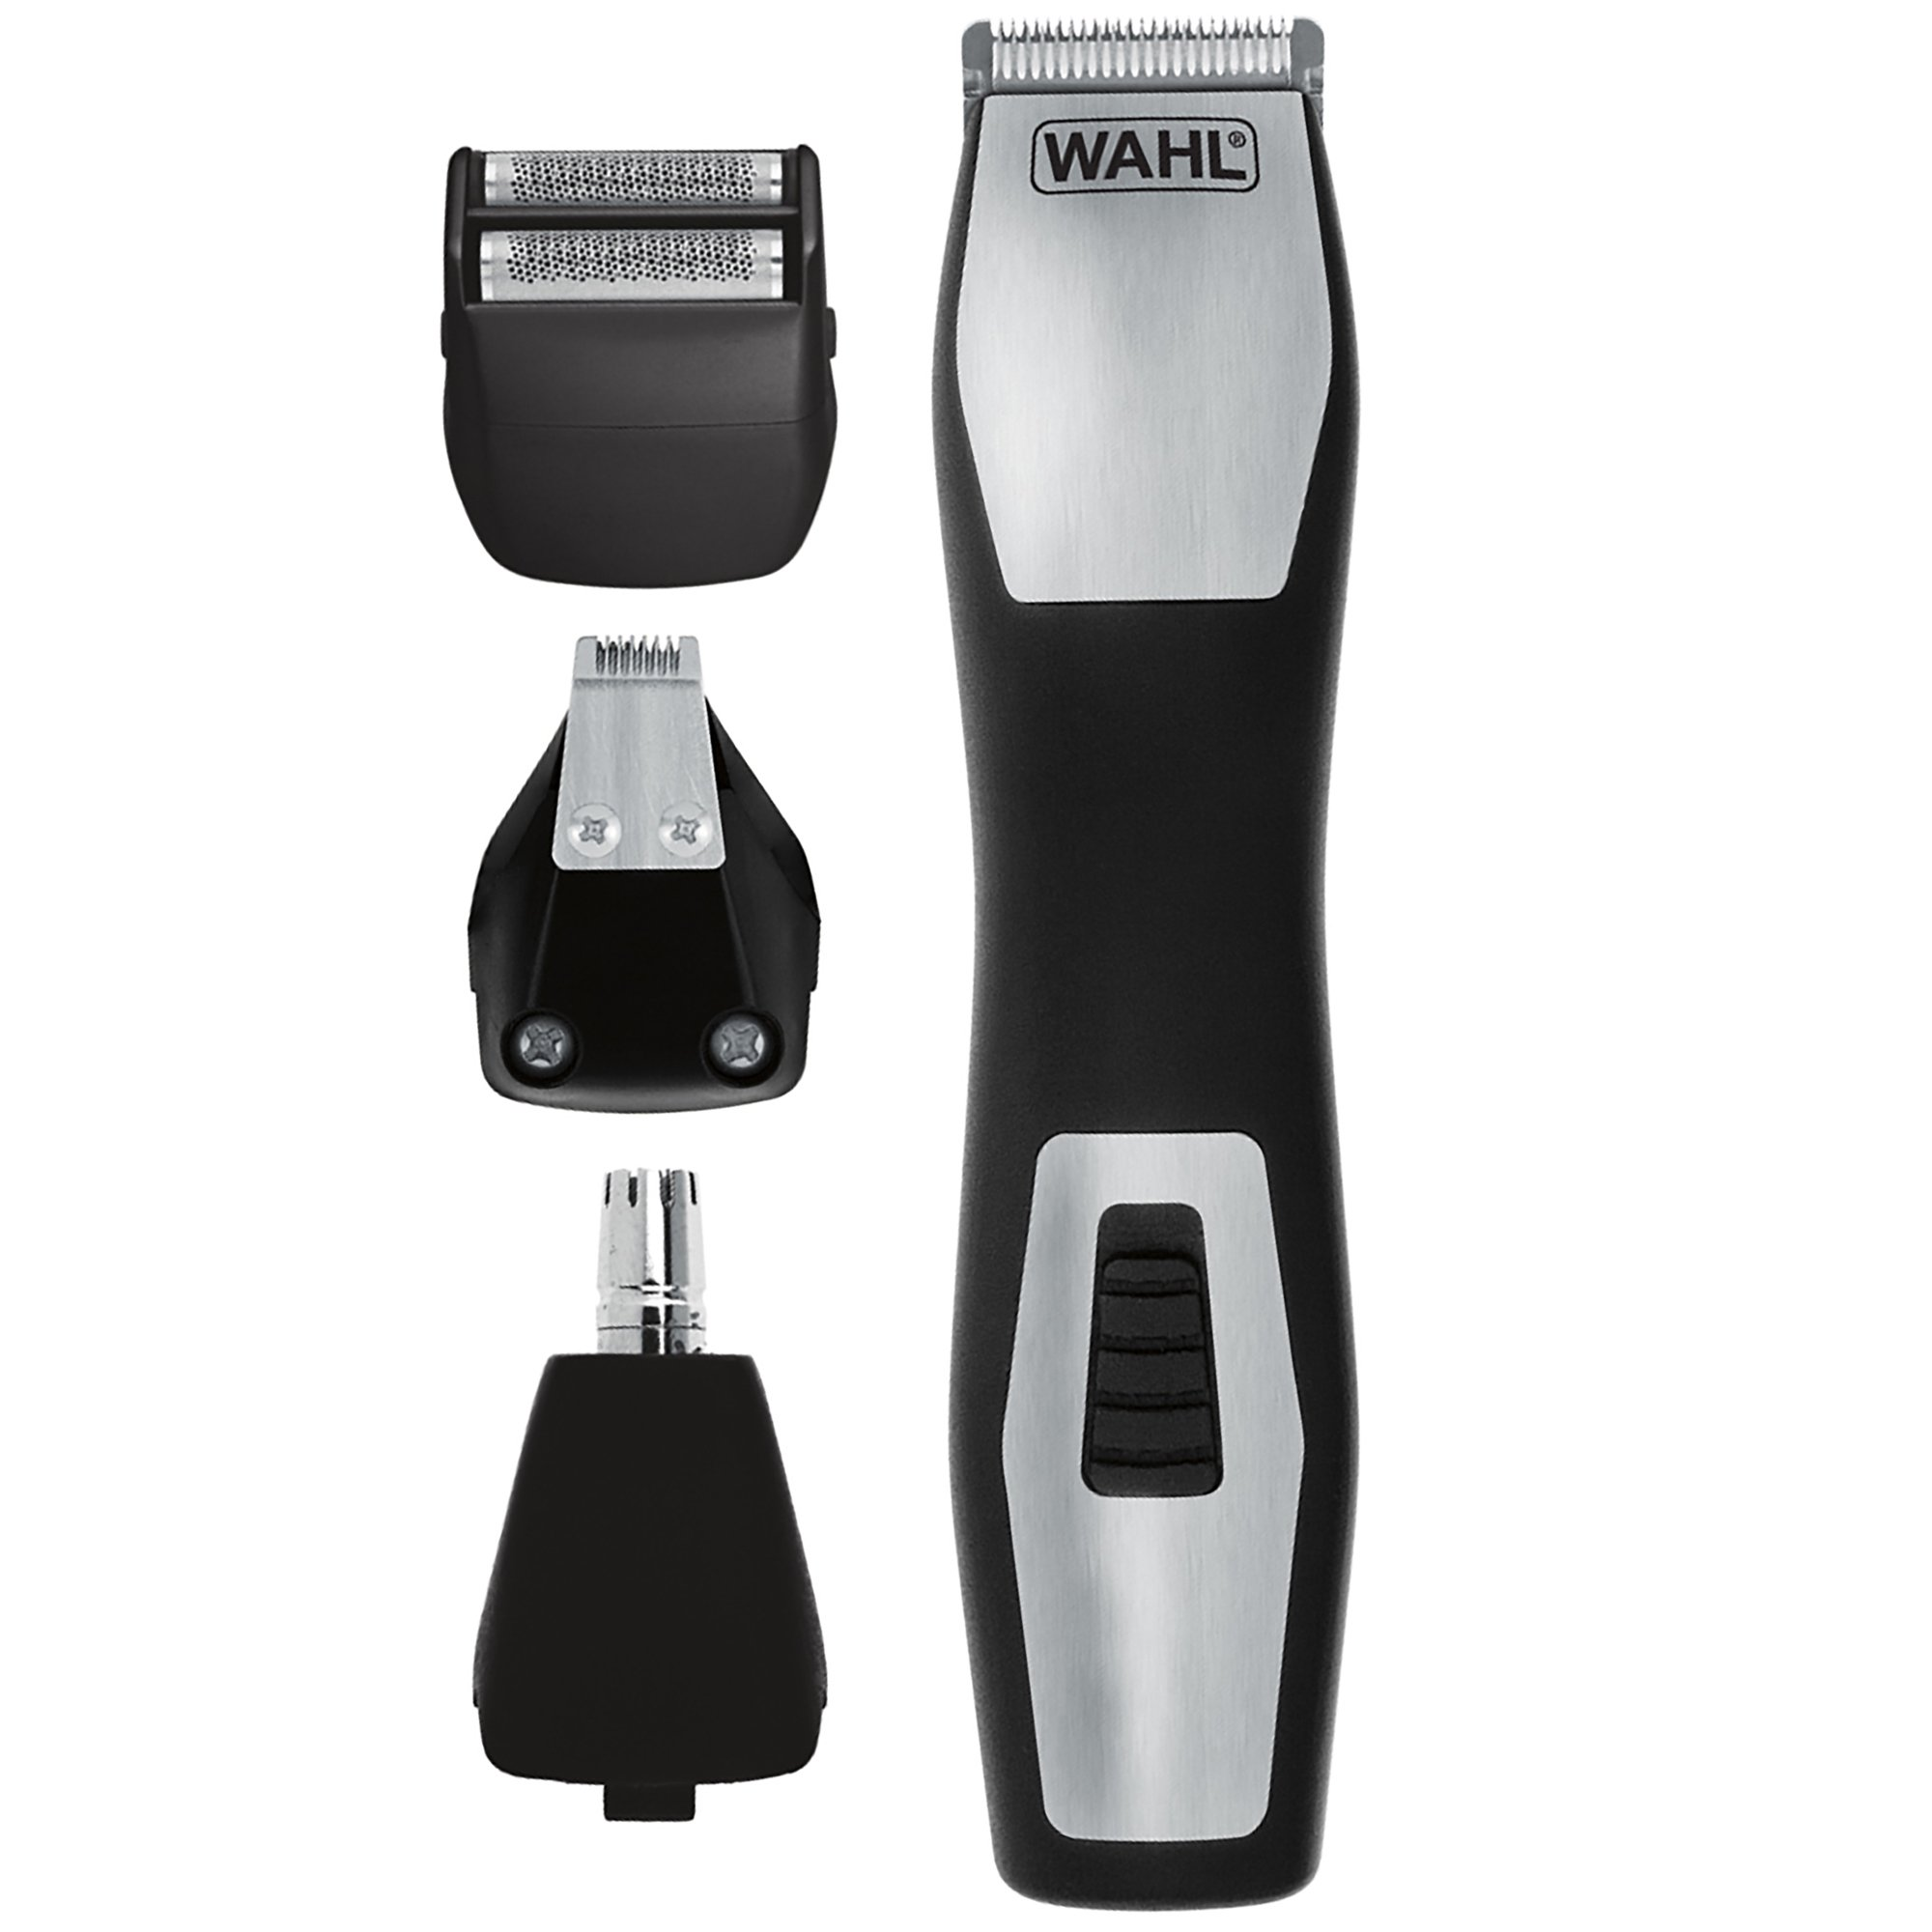 Wahl 9855-300 Groomsman Pro All-in-One Rechargeable Grooming Kit, Black/Silver